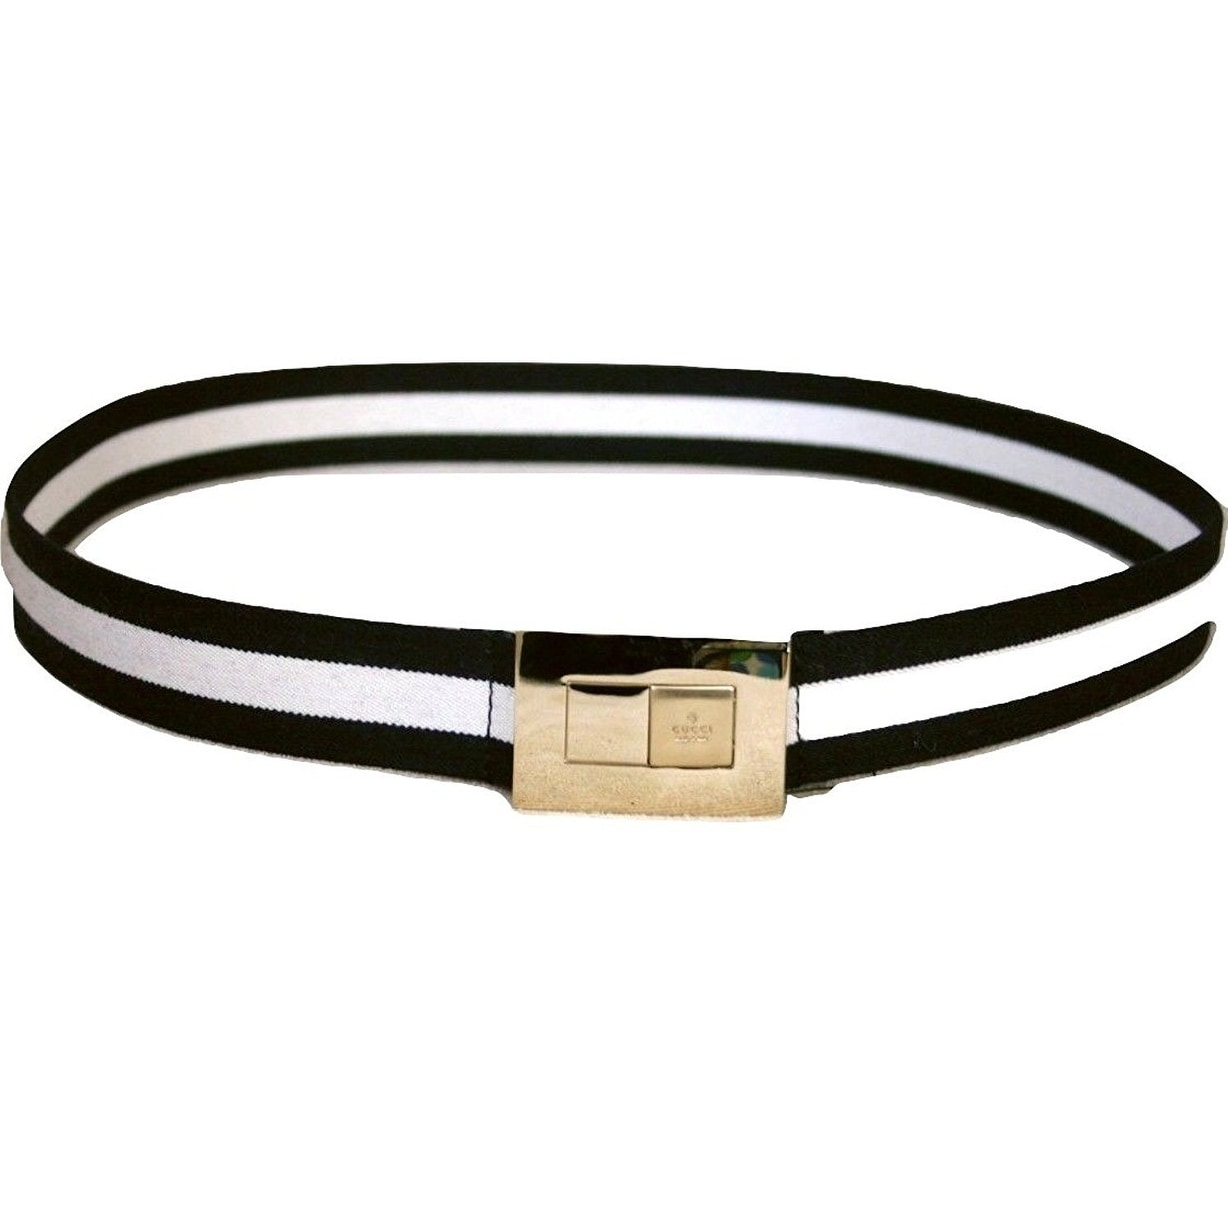 4642d1a6 Gucci Women's BWB Web Belt with Gold Buckle 253488 (100 / 40)